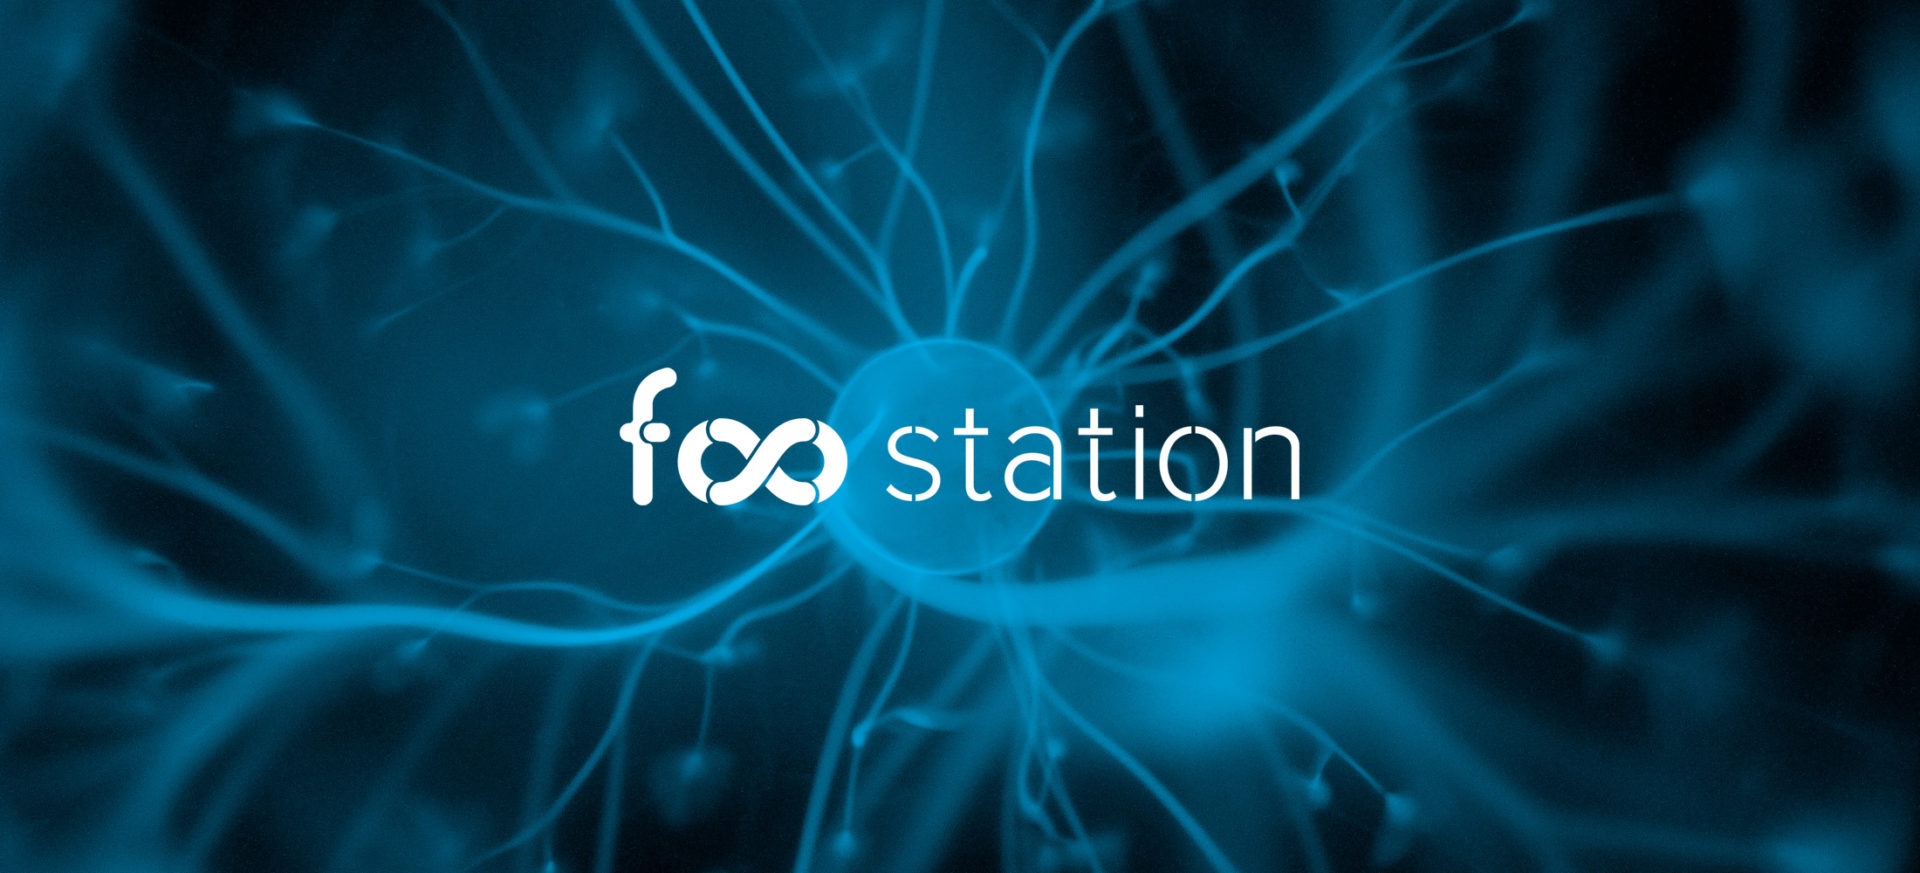 foostation-header-end